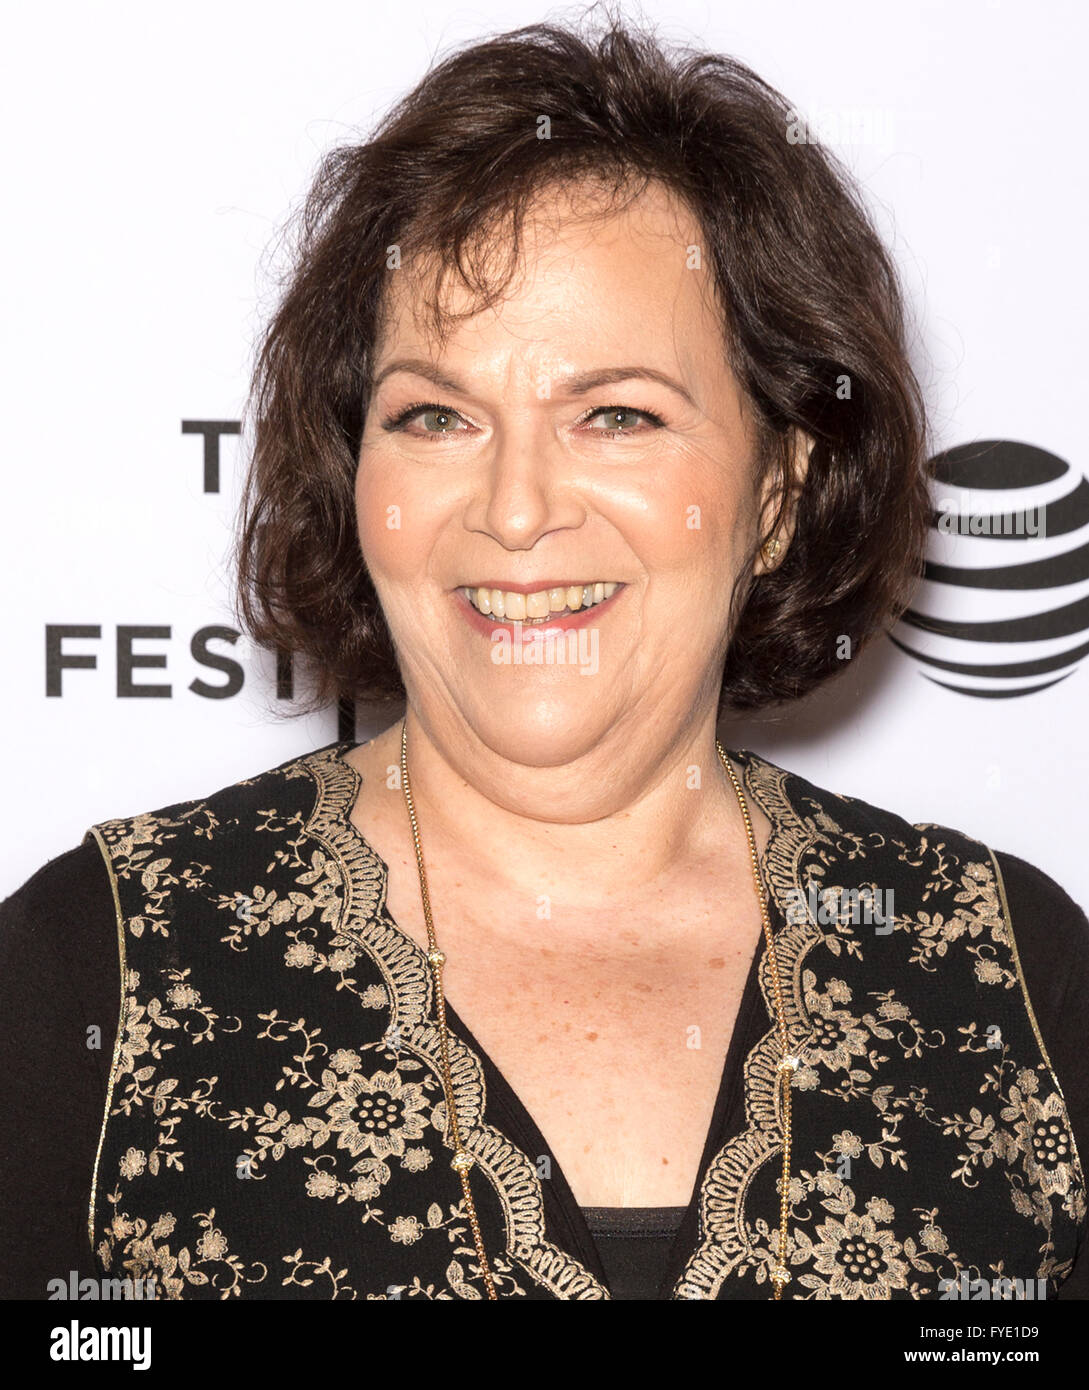 New York City, USA - April 24, 2016: Susan Varon attends the Almost Paris premiere during the 2016 Tribeca Film - Stock Image